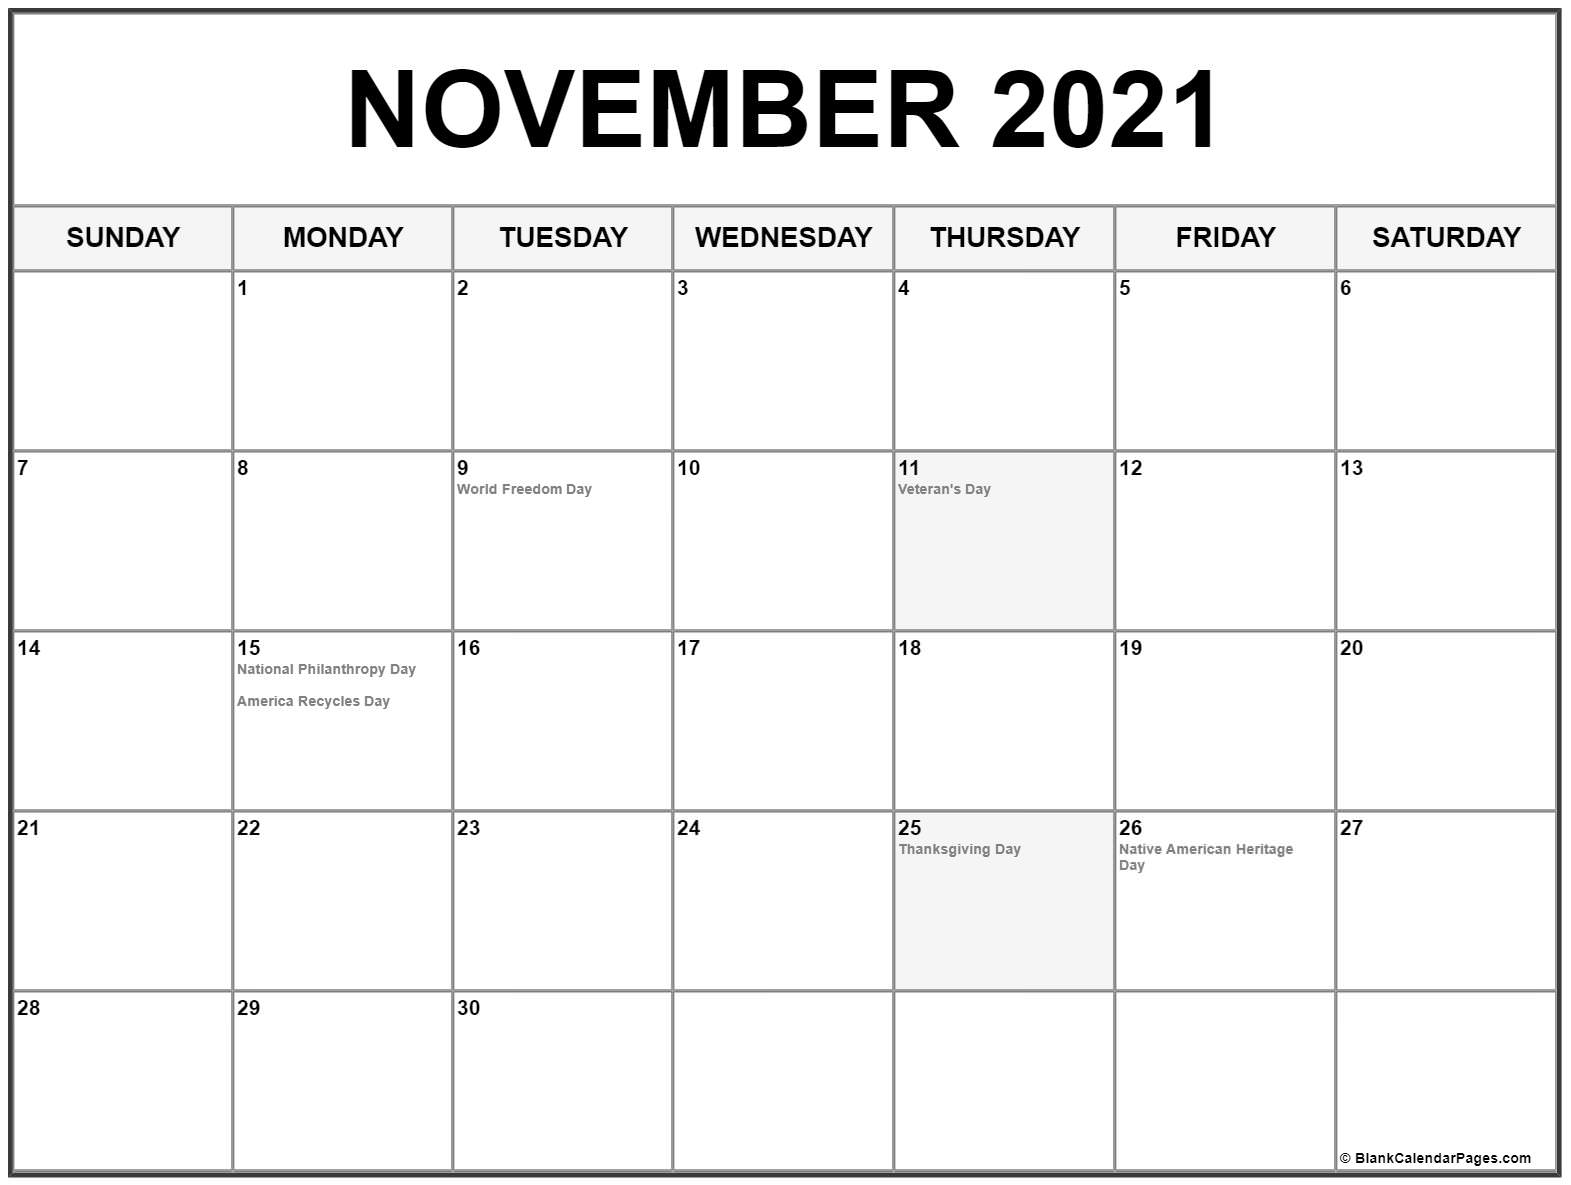 Nov 2020 Calendar With Holidays Collection of November 2020 calendars with holidays